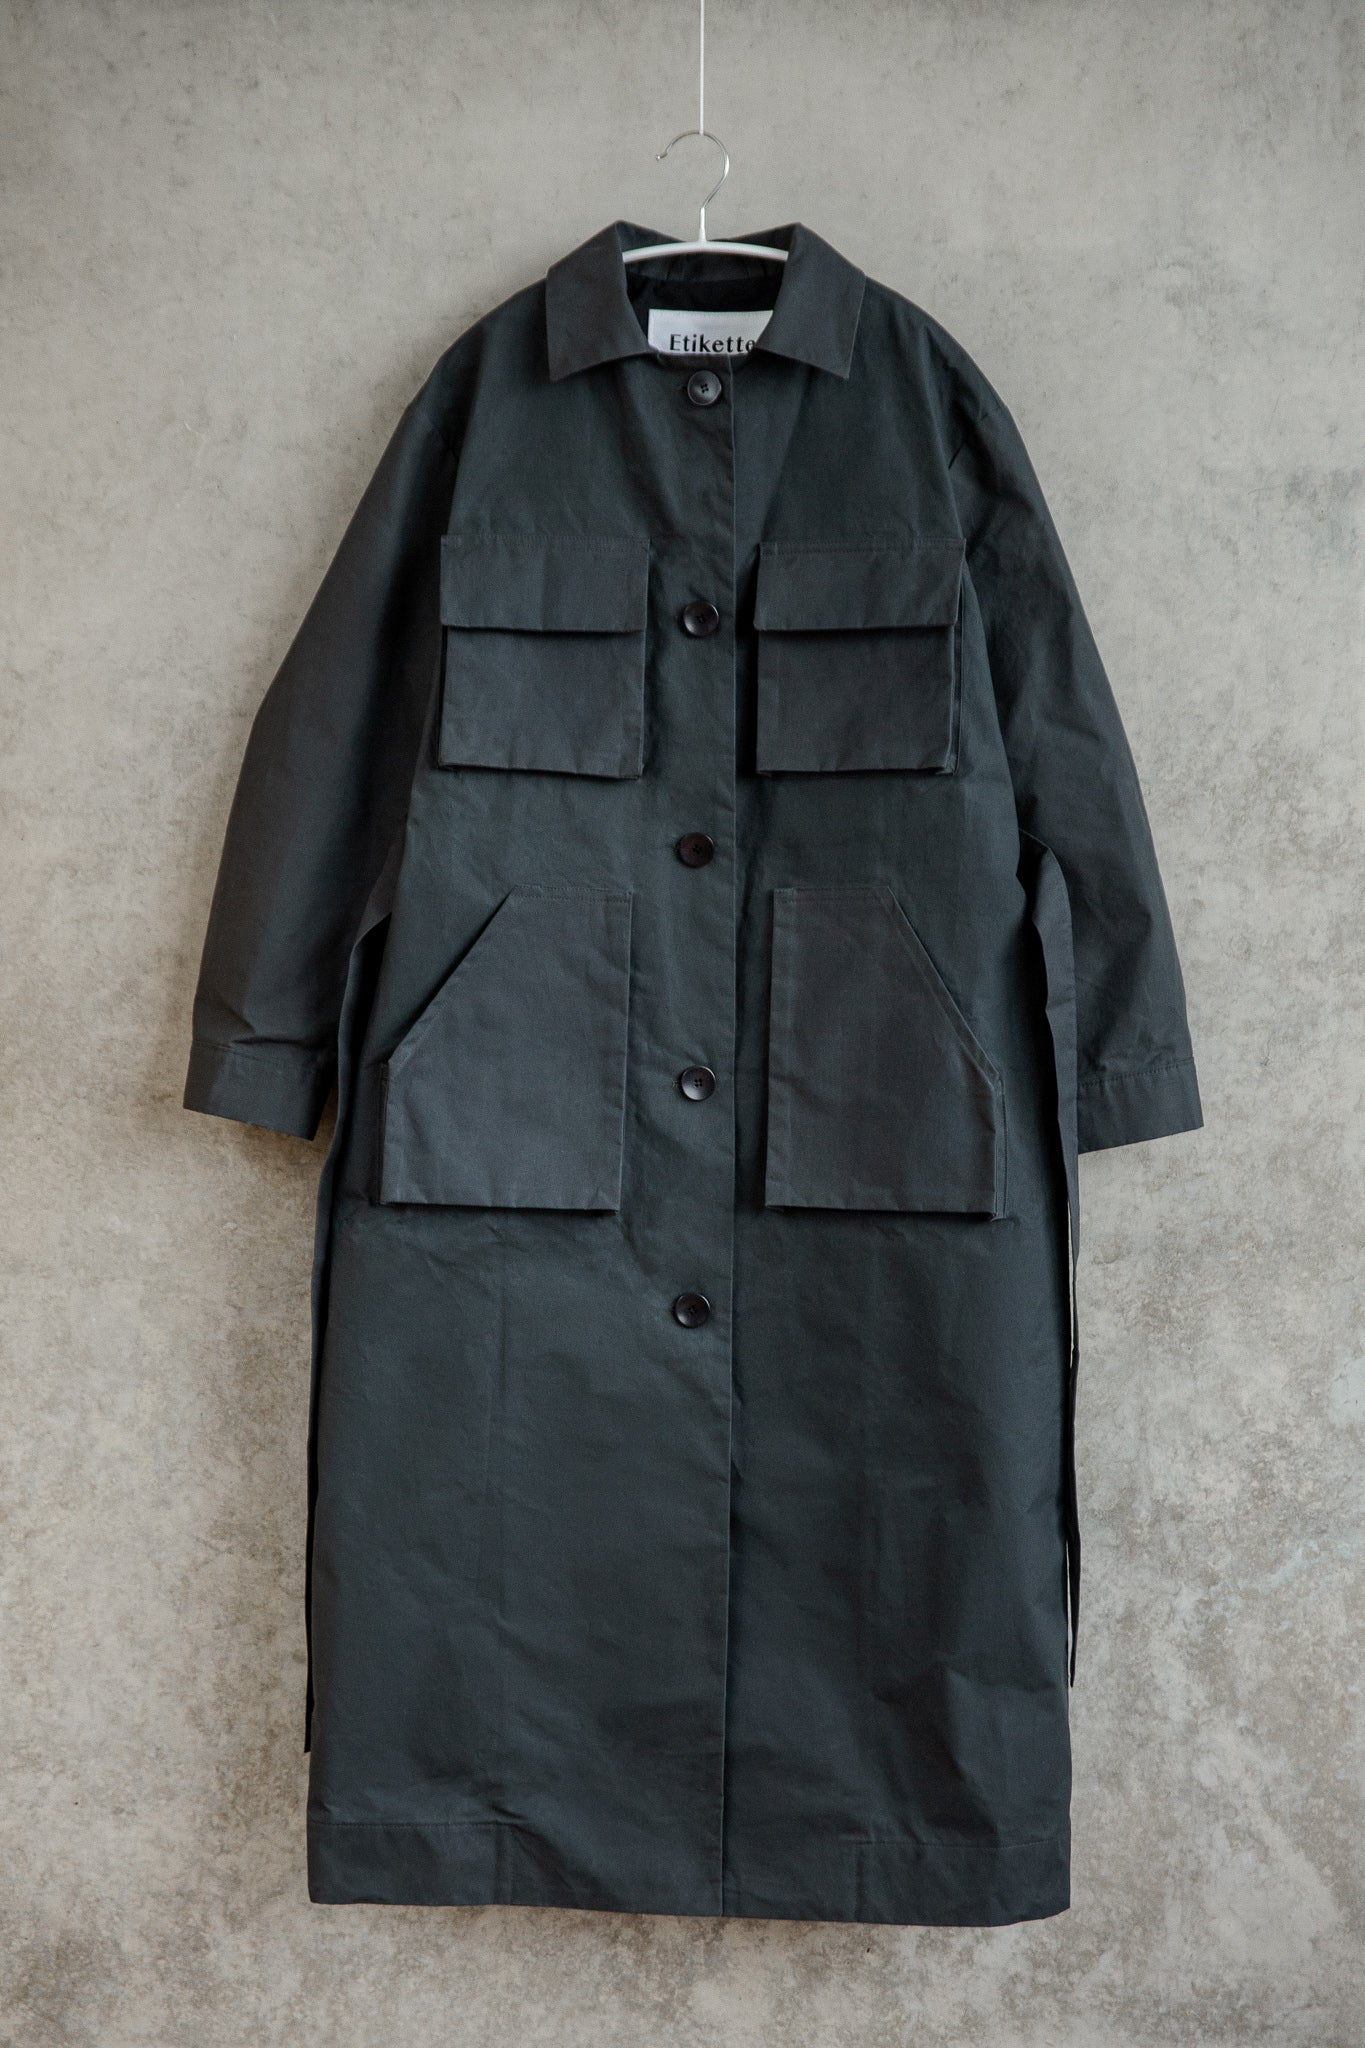 The Long Commuter Jacket #1